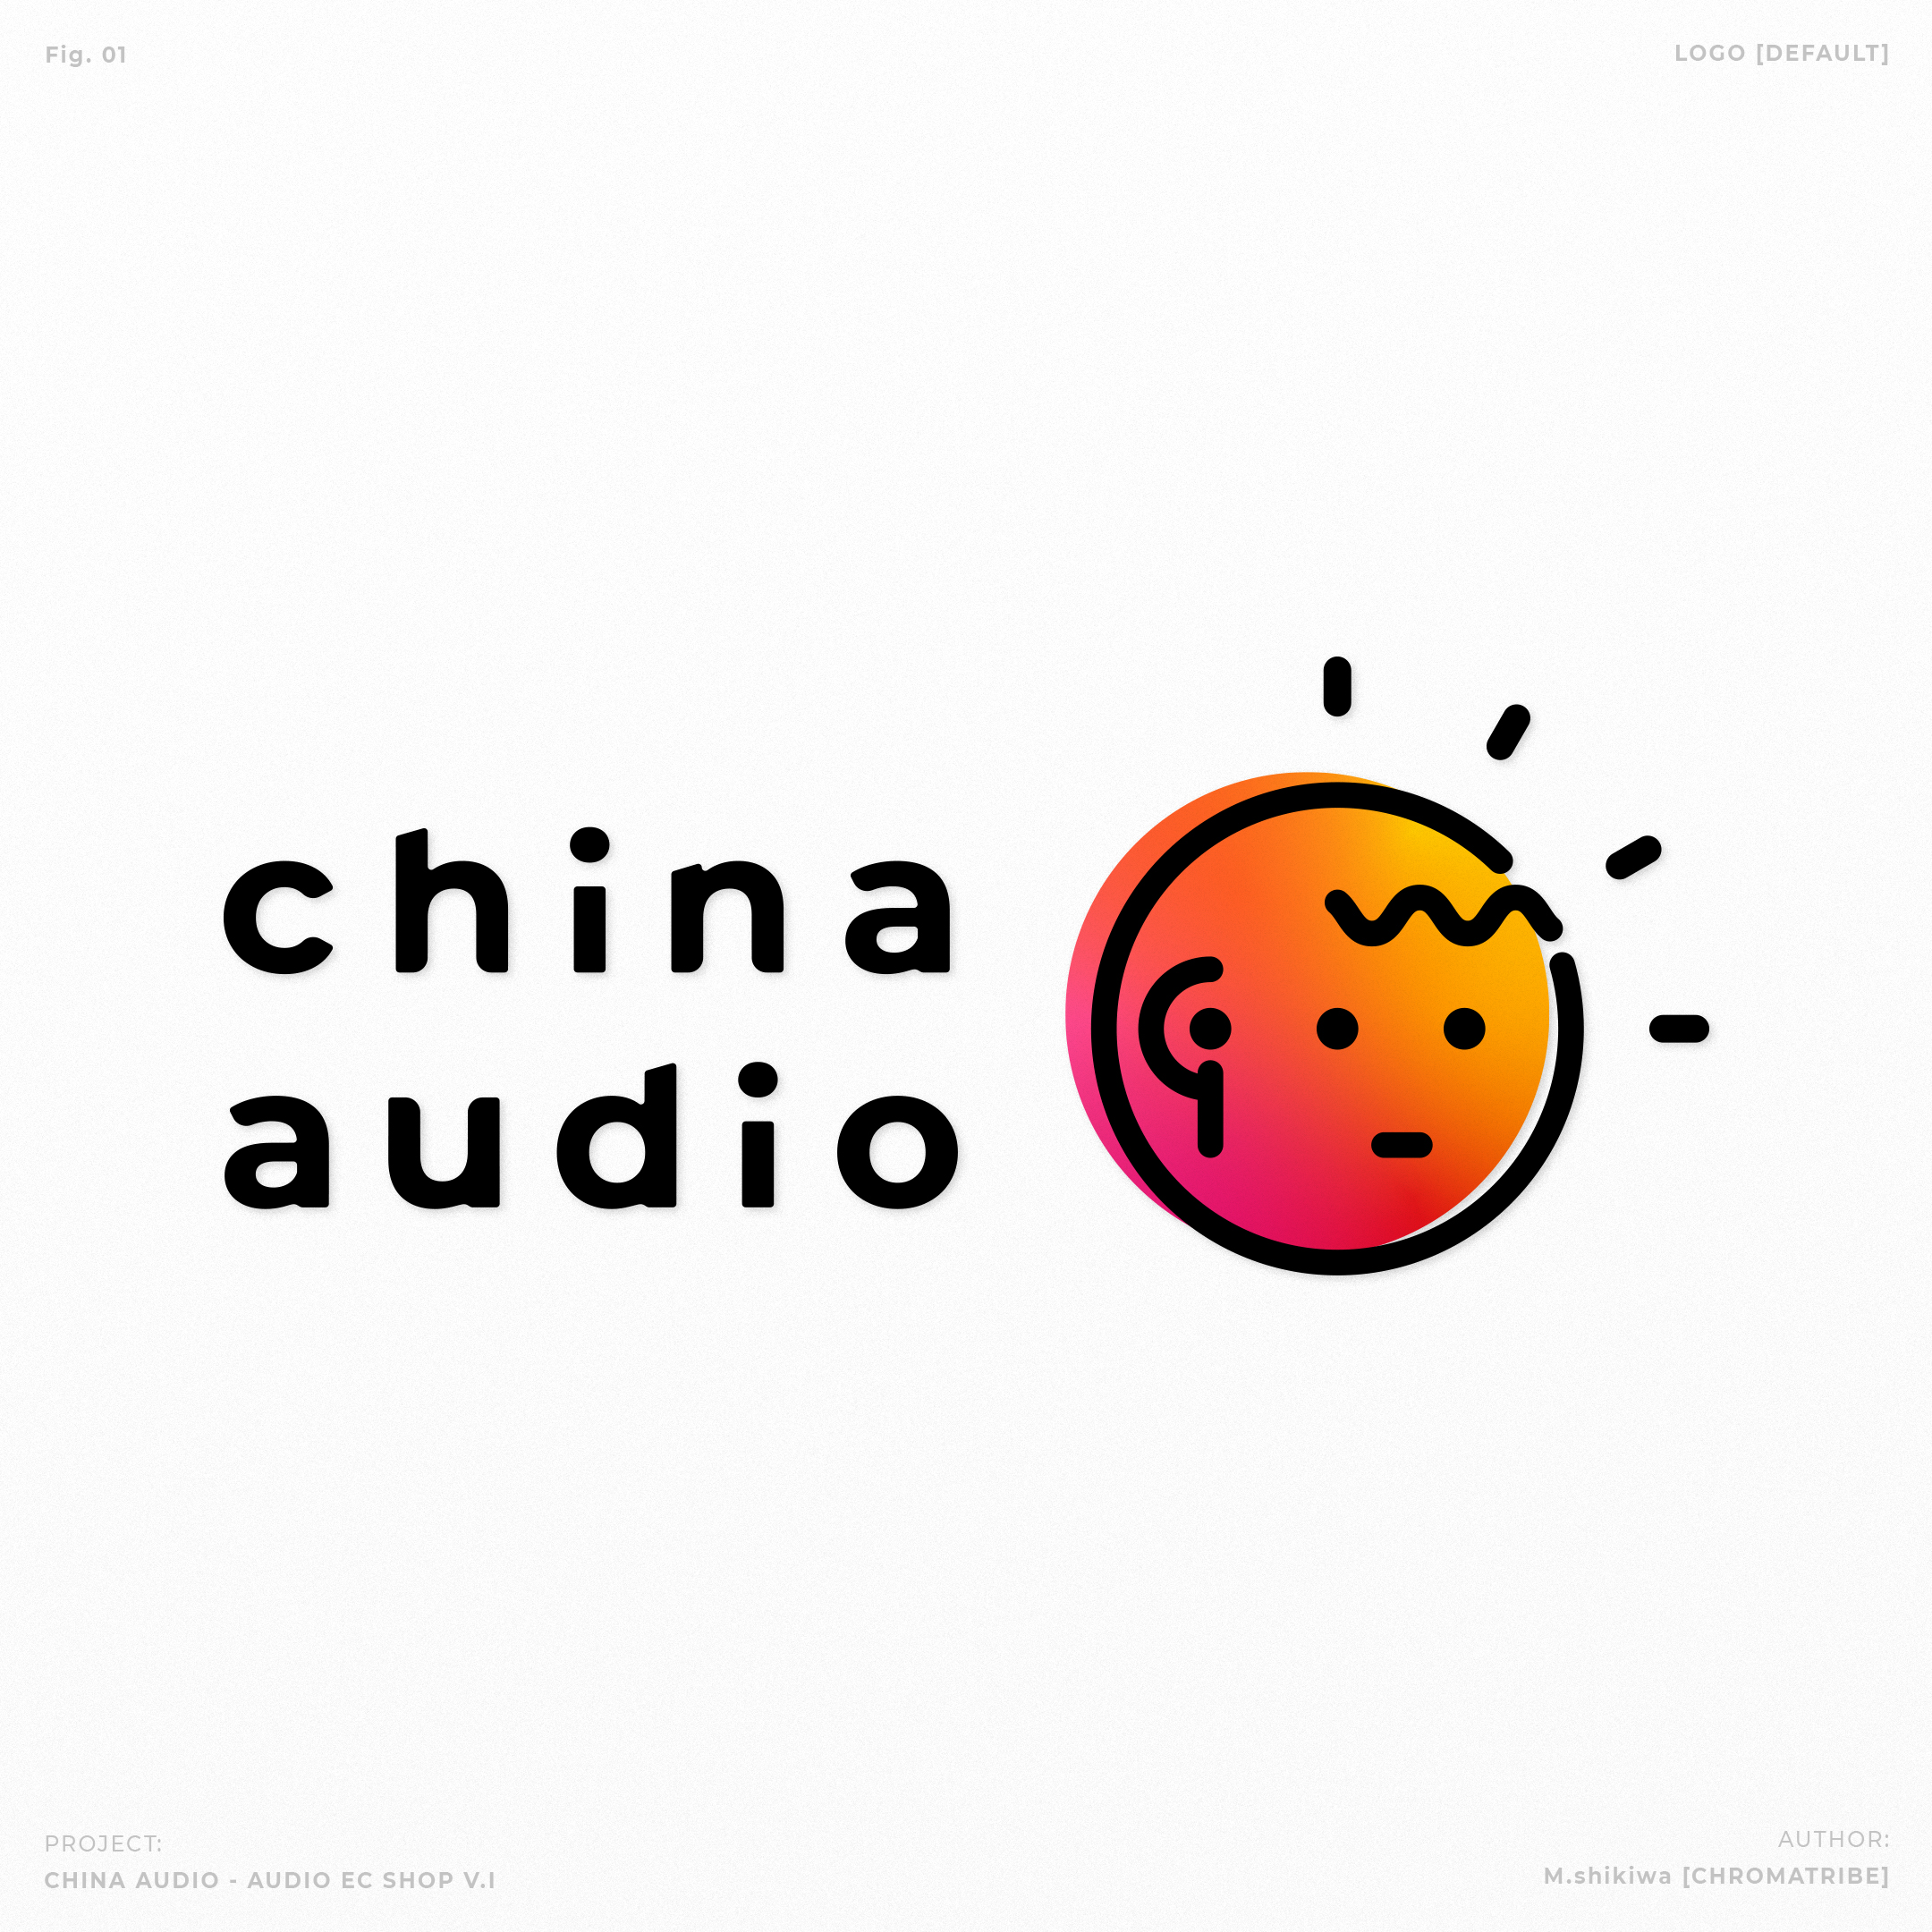 china audio